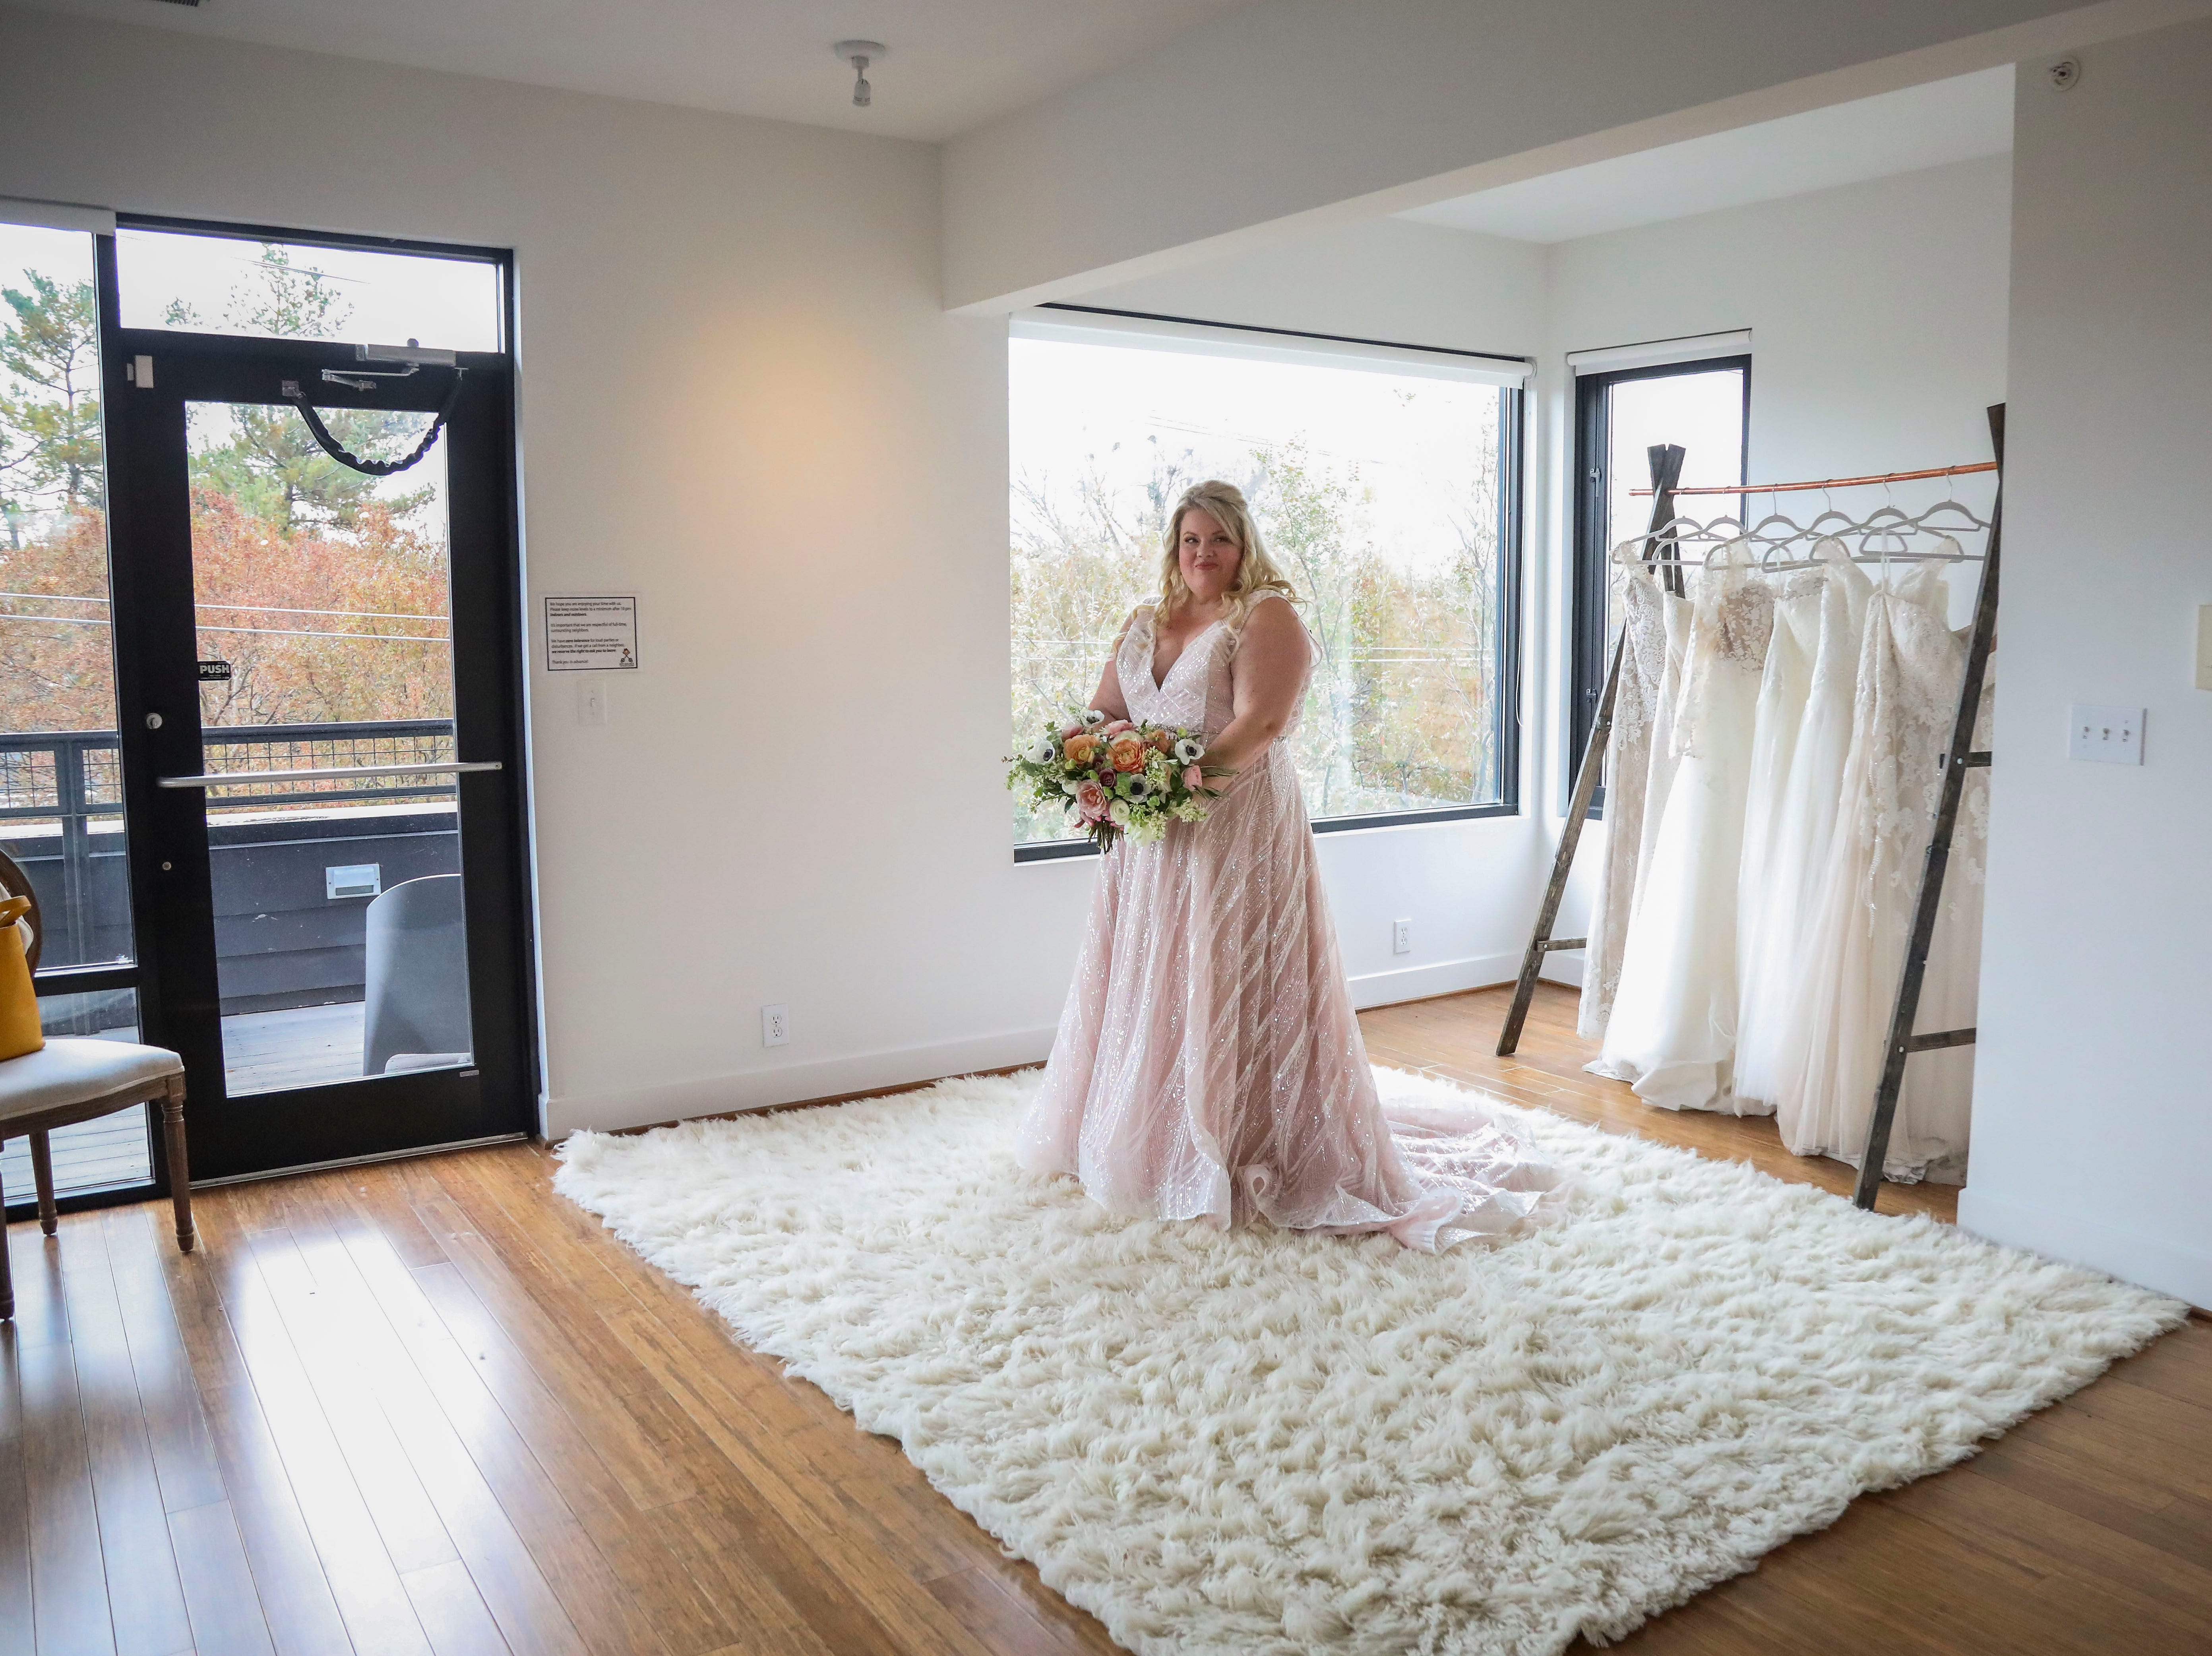 Misty Hair models a Couture Closet Bridal dress in NuLu in Louisville, Ky. on Monday, November 12, 2018. Plus-sizes make up only 16 percent of all apparel sales, though, 67% of women in the United States wear a size 14 or above. 